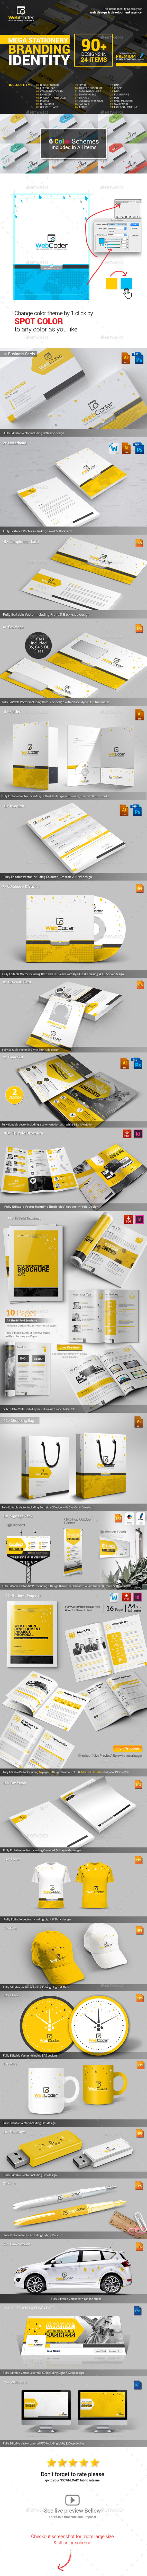 GraphicRiver Web Design Agency Stationery Branding Identity 11767335